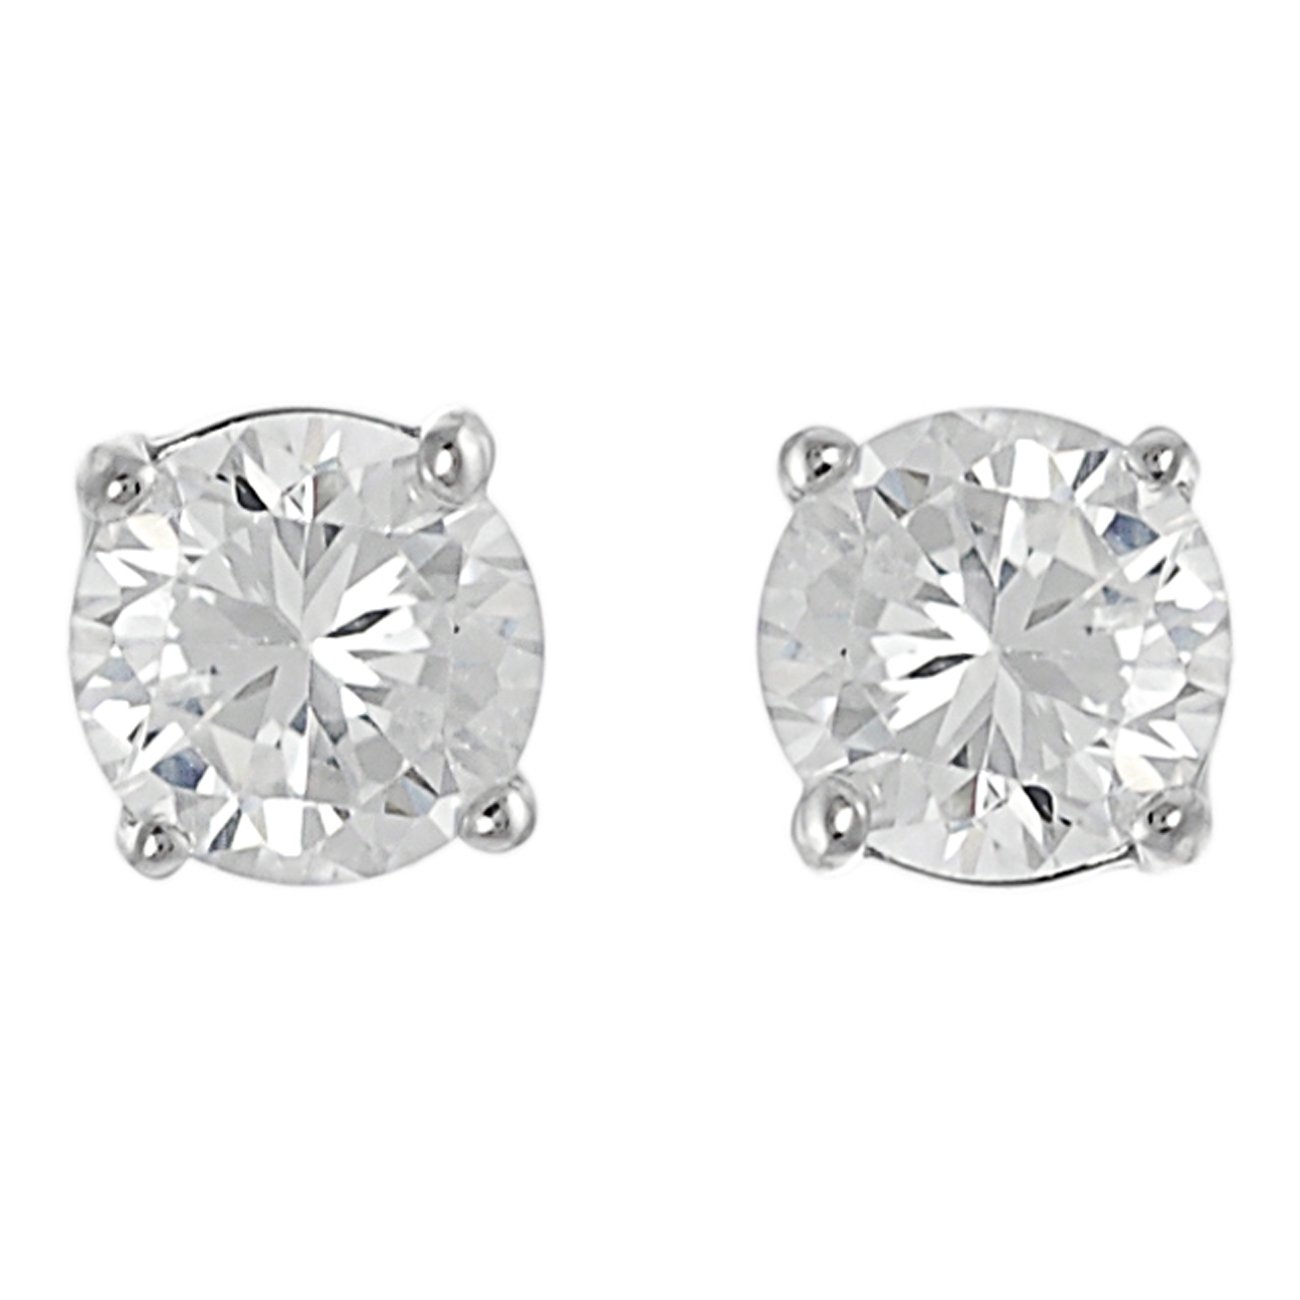 SilverBin Sterling Silver 6-mm Round-cut Cubic Zirconia Stud Earrings at Sears.com